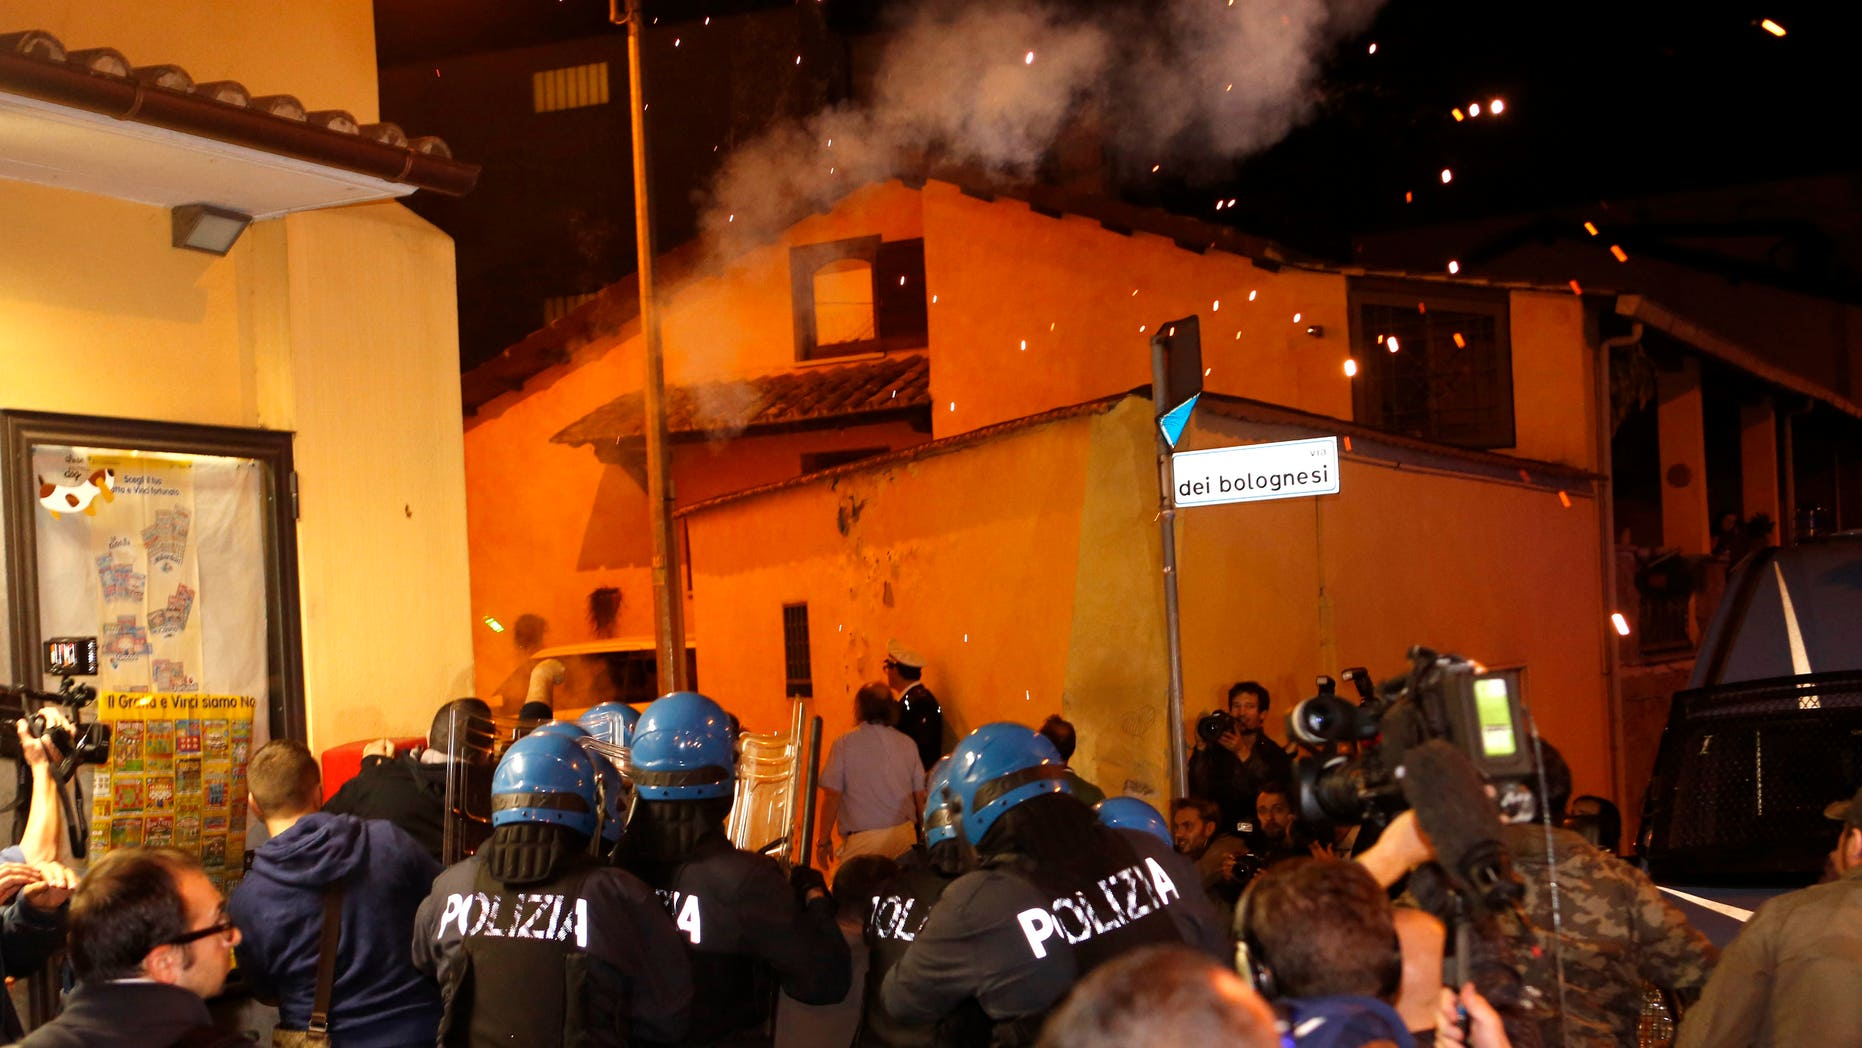 Oct. 15, 2013: Police in riot gear go after protesters after scuffles broke out outside the Society of St. Pius X, a schismatic Catholic group, where funeral of Nazi war criminal Erich Priebke was scheduled to take place, in Albano Laziale, on the outskirts of Rome.